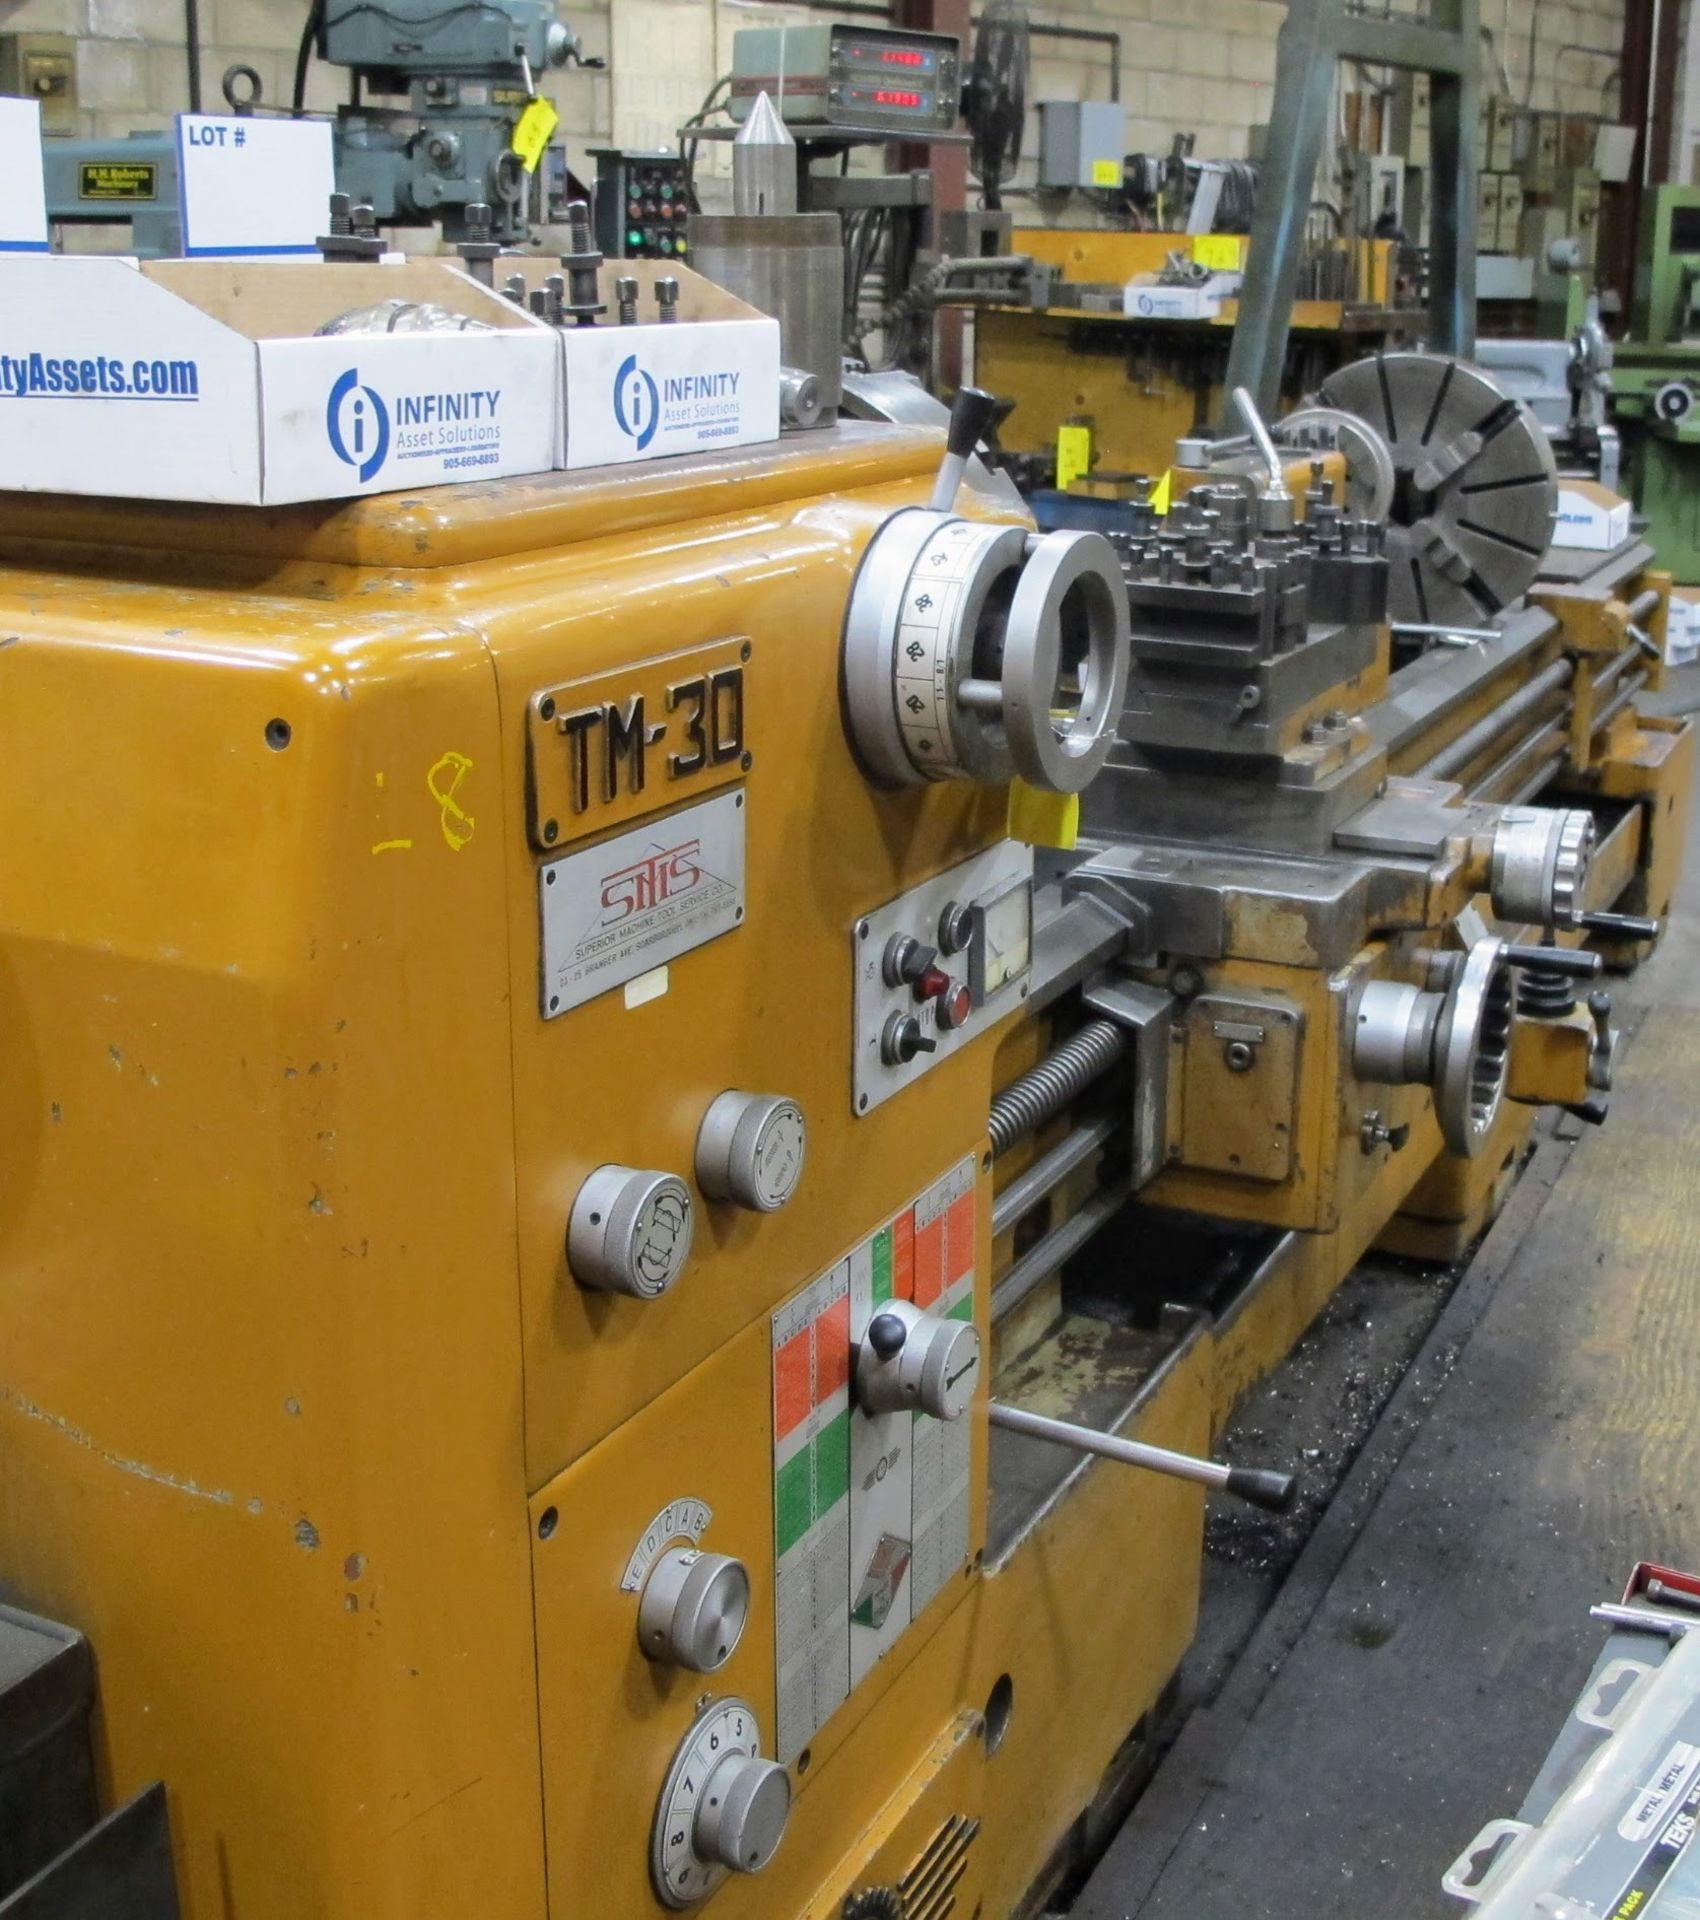 """Lot 74 - PBR TM-30 LATHE, 2-AXIS DRO, 12"""" 3-JAW CHUCK, 12' BED, 15 - 1,500 RPM, QUICK CHANGE TOOL HOLDER,"""